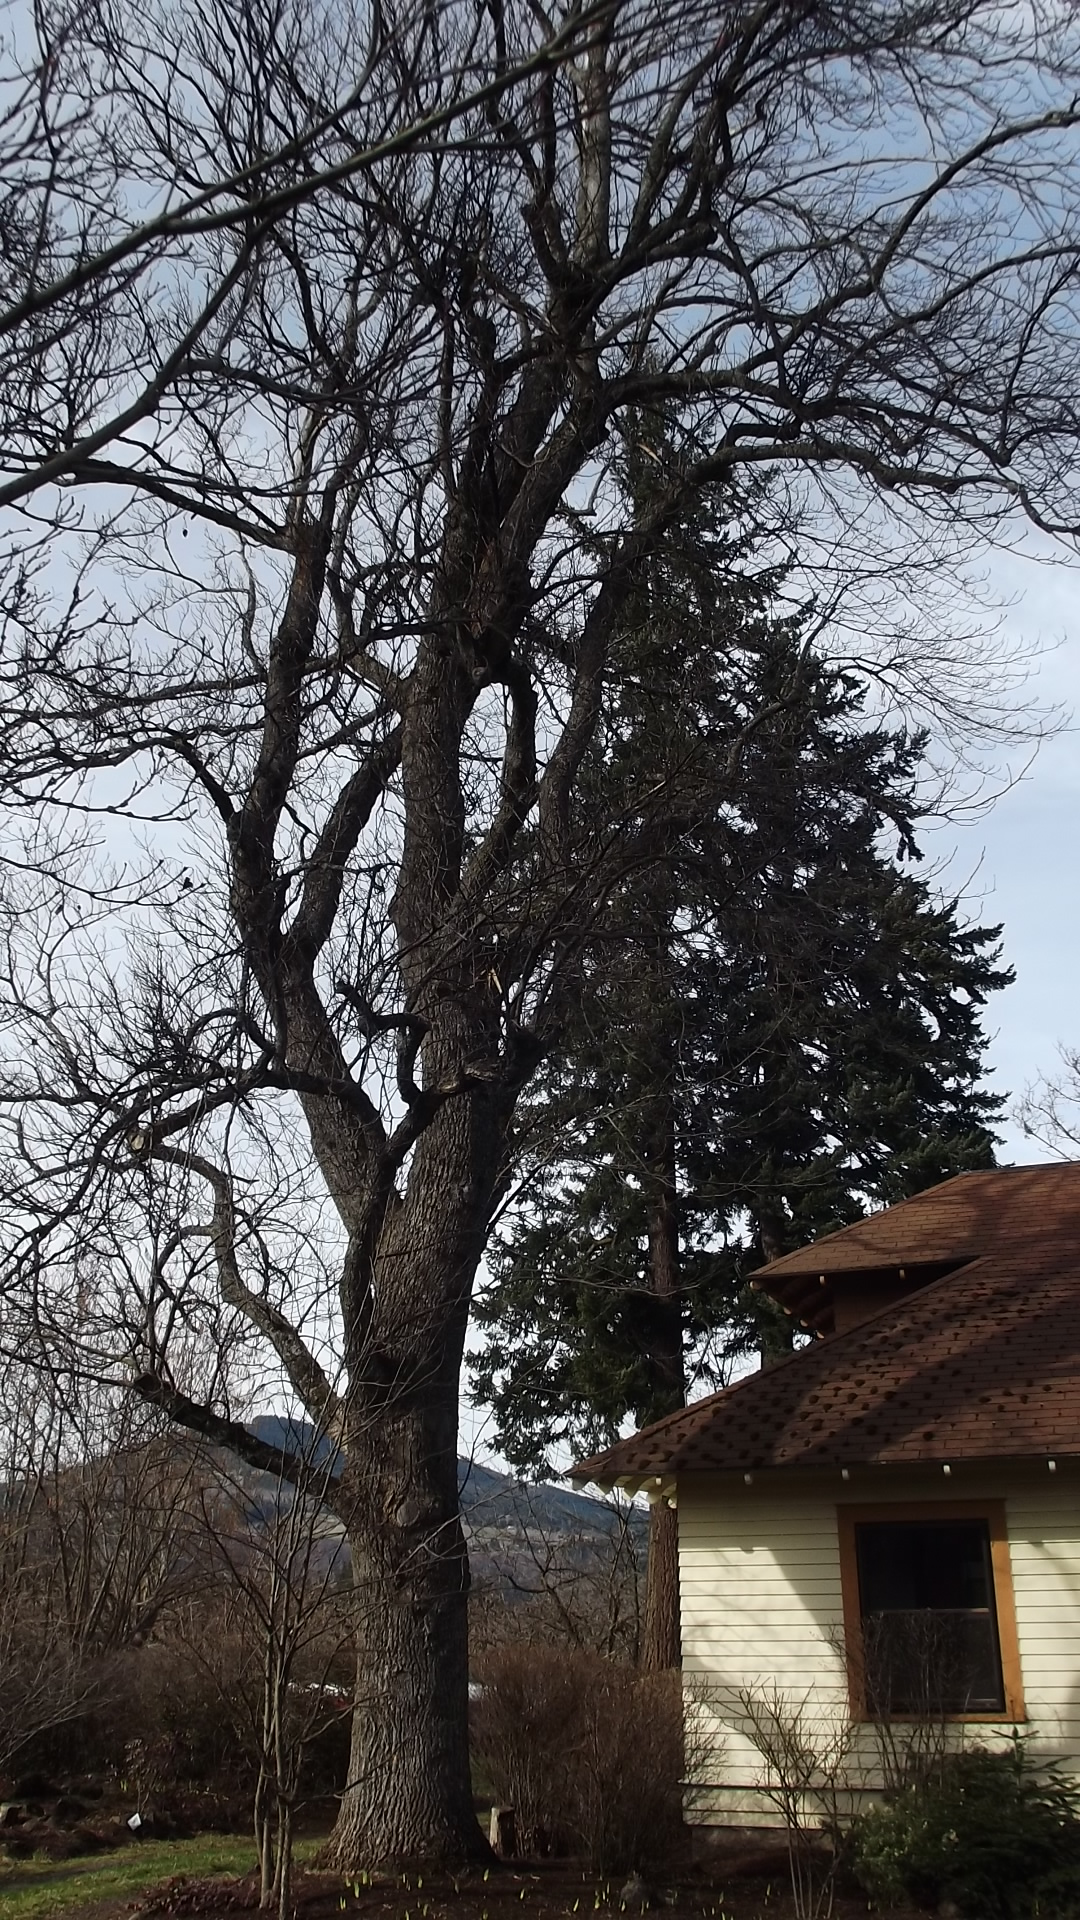 Tulip Poplar Before Pruning for Aesthetics and Safety